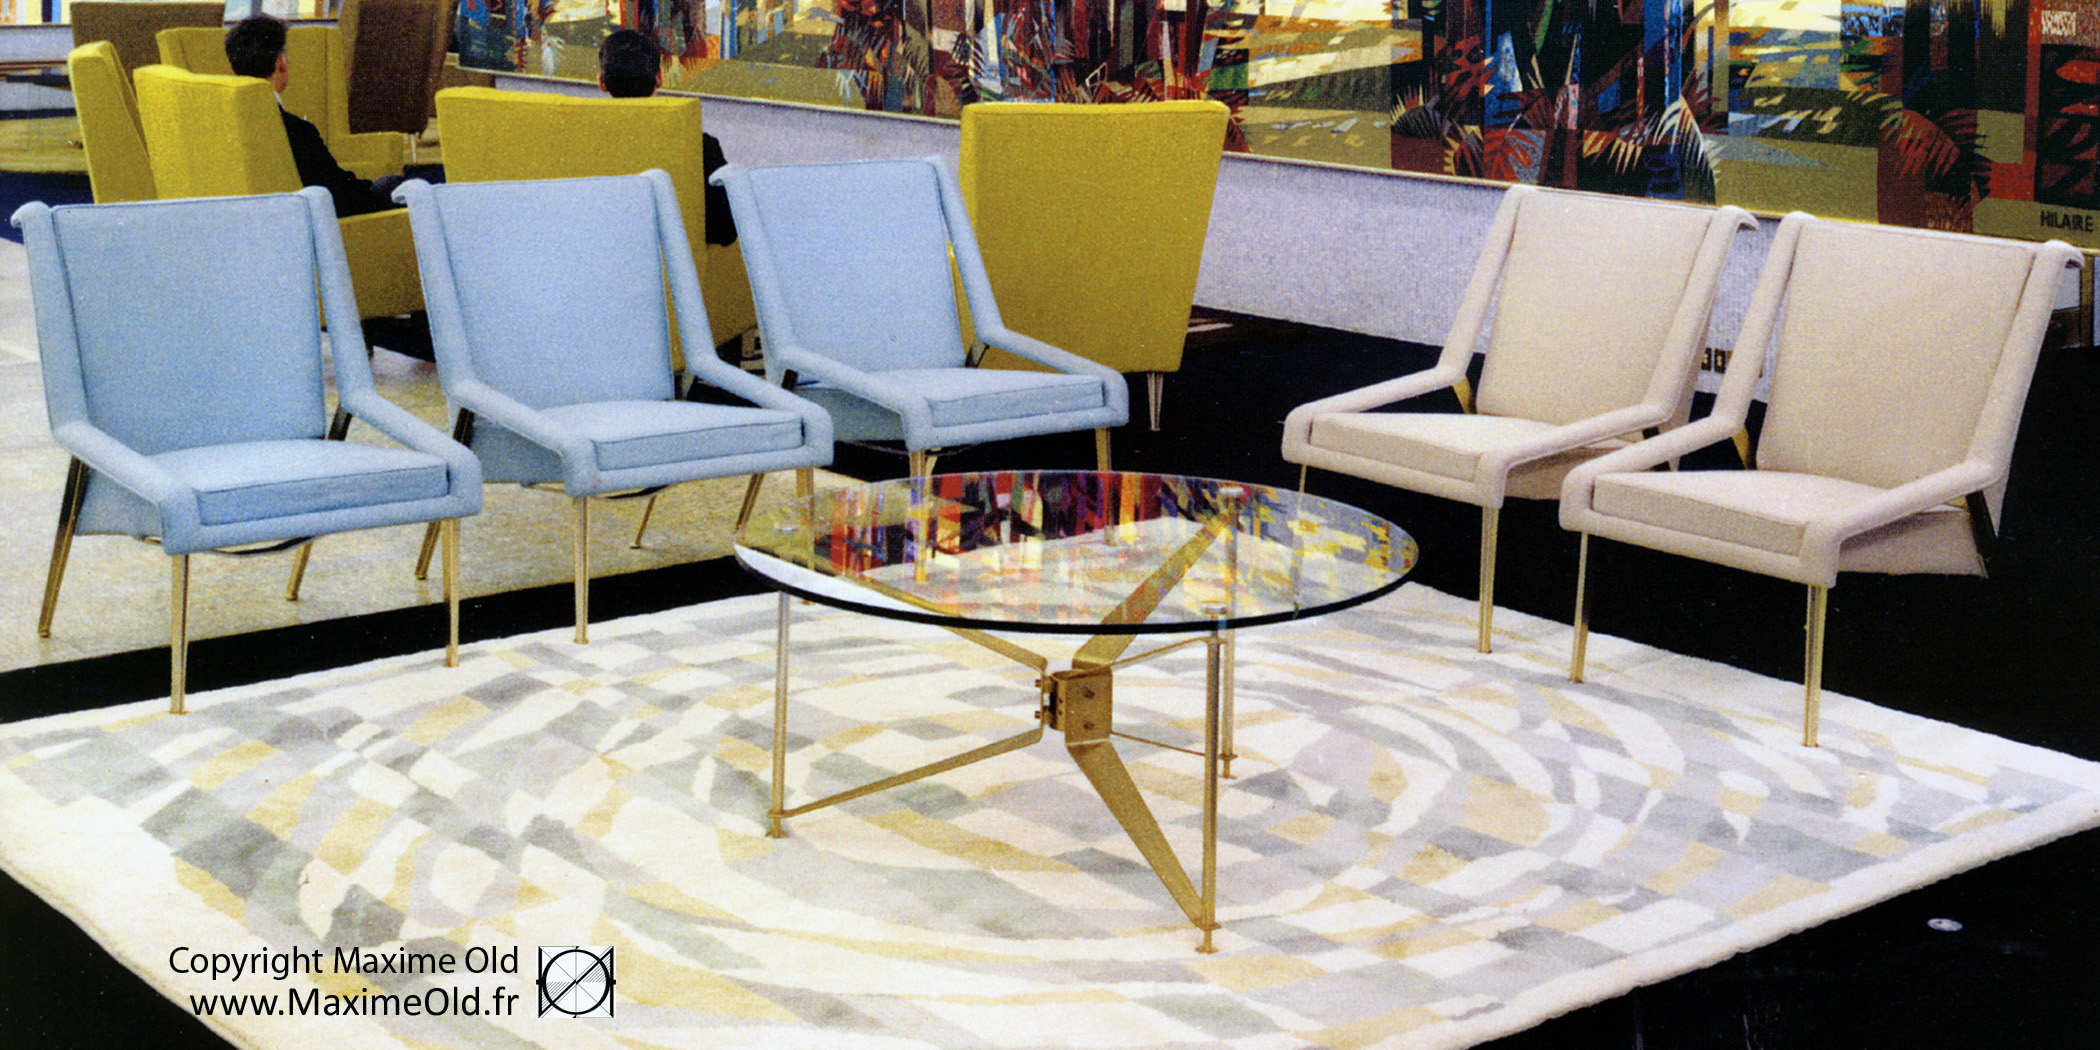 Maxime Old Coffee-Side Tables